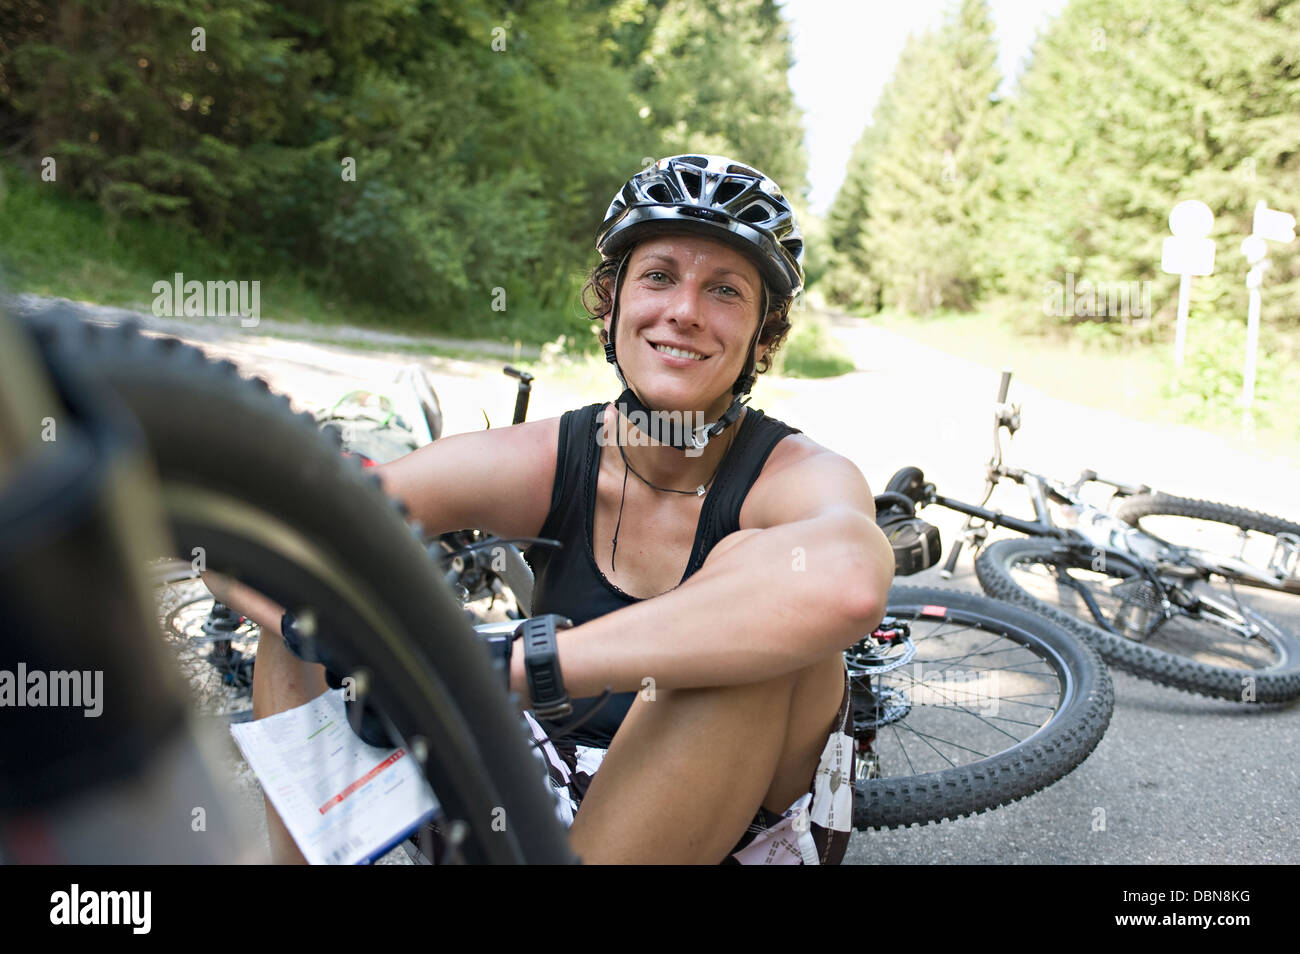 Female Bicyclist Sitting On Road, Sonthofen, Schattwald, Bavaria, Germany - Stock Image